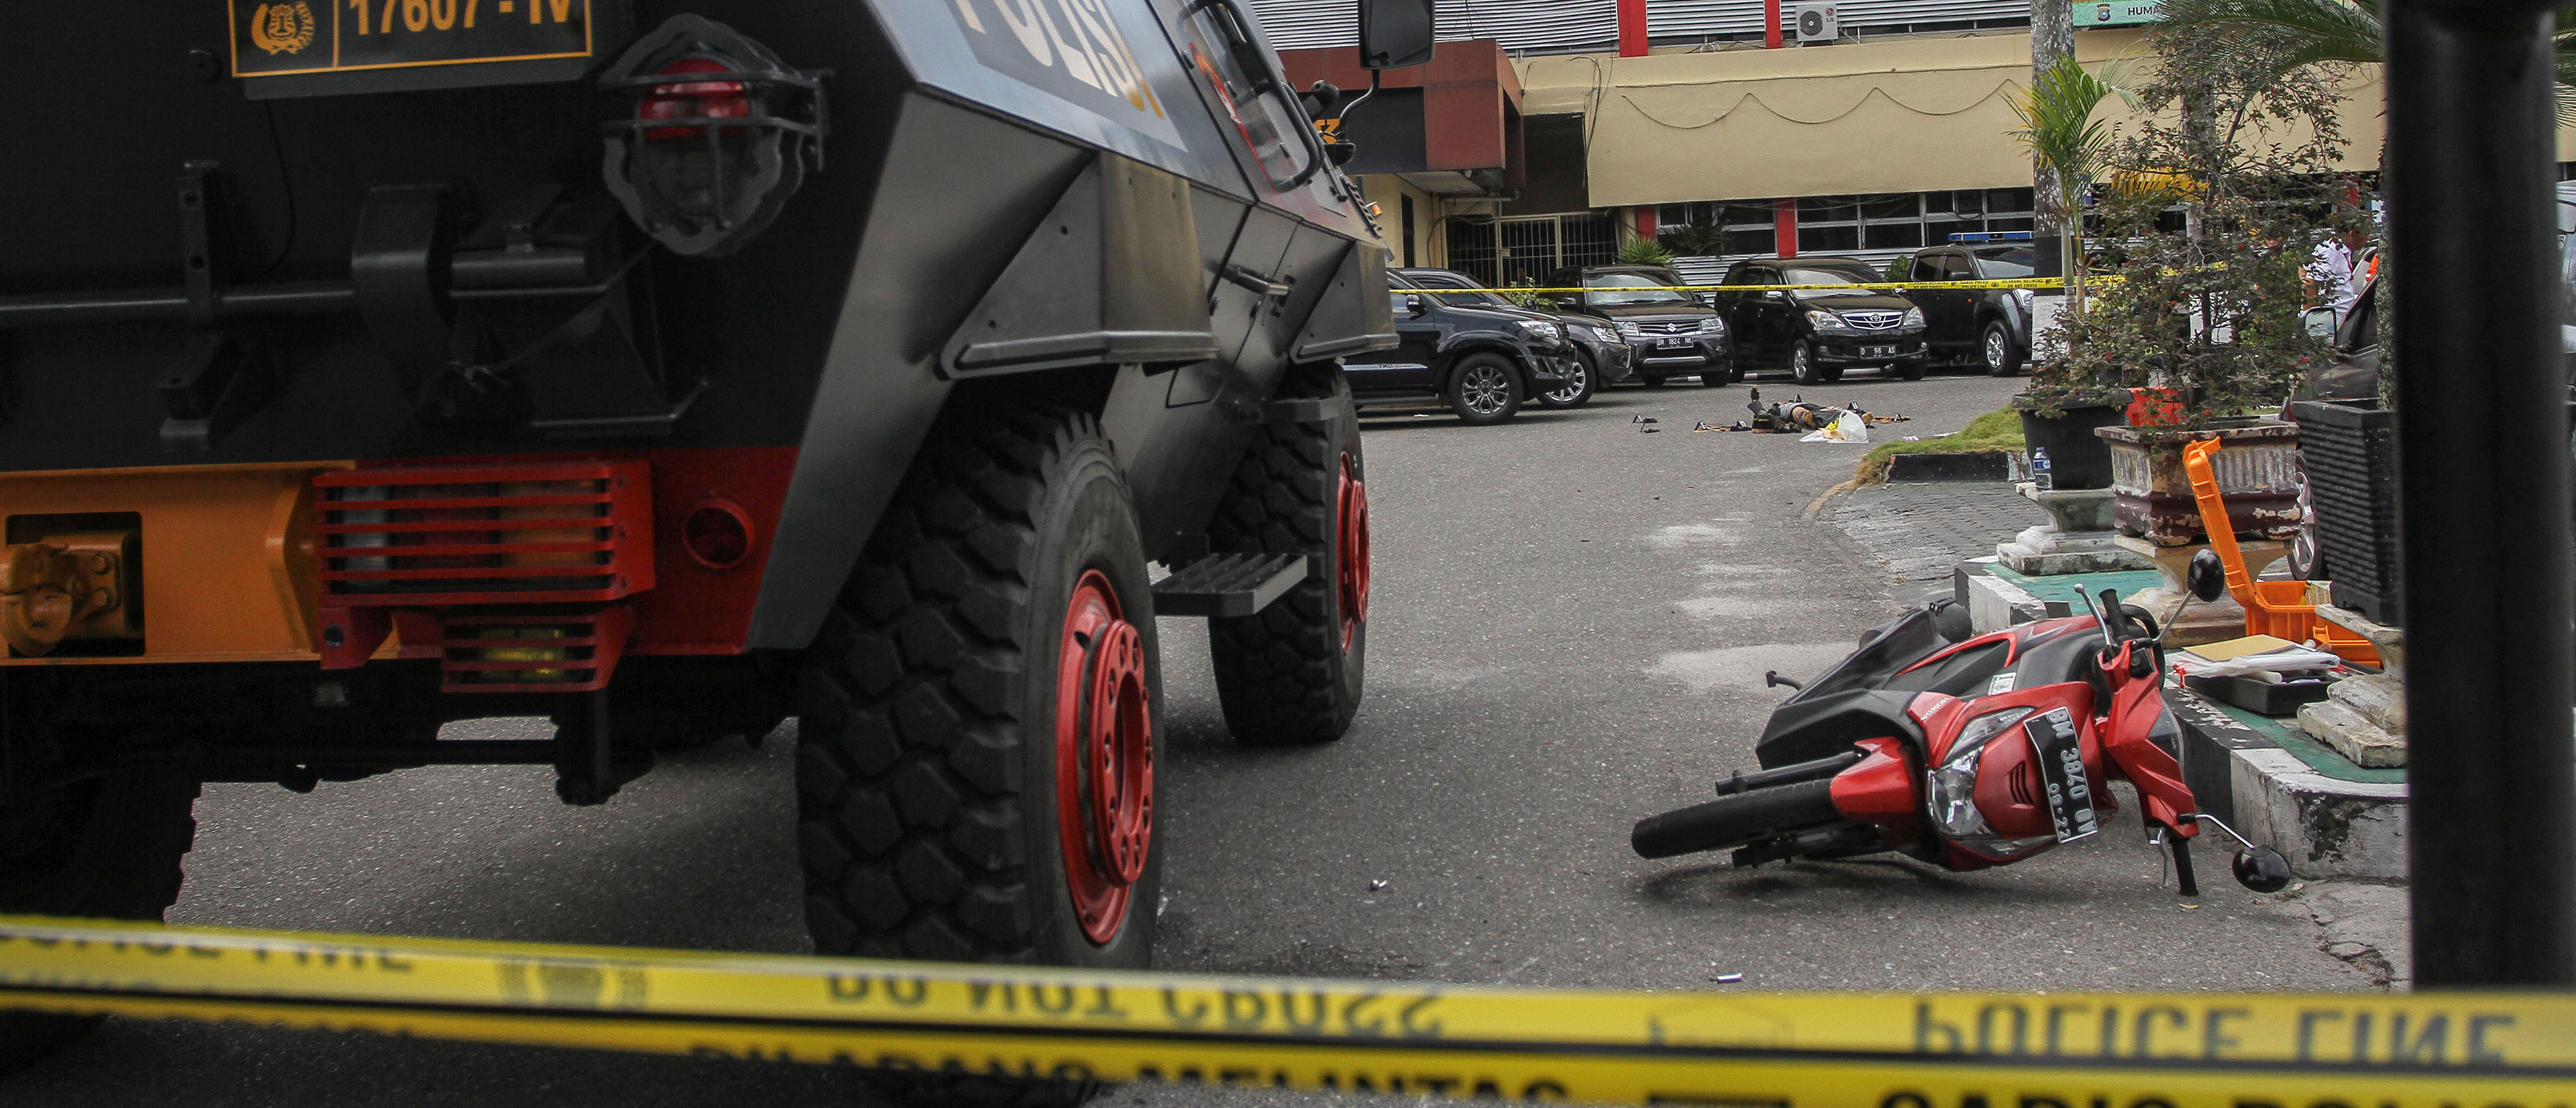 A general view of the scene following an attack at the entrance of a police station in Pekanbaru, Indonesia May 16, 2018 in this photo taken by Antara Foto. Antara Foto/ Rony Muharrman/ via REUTERS  ATTENTION EDITORS - THIS IMAGE WAS PROVIDED BY A THIRD PARTY. MANDATORY CREDIT. INDONESIA OUT. NO COMMERCIAL OR EDITORIAL SALES IN INDONESIA. TEMPLATE OUT. - RC13C5D71960